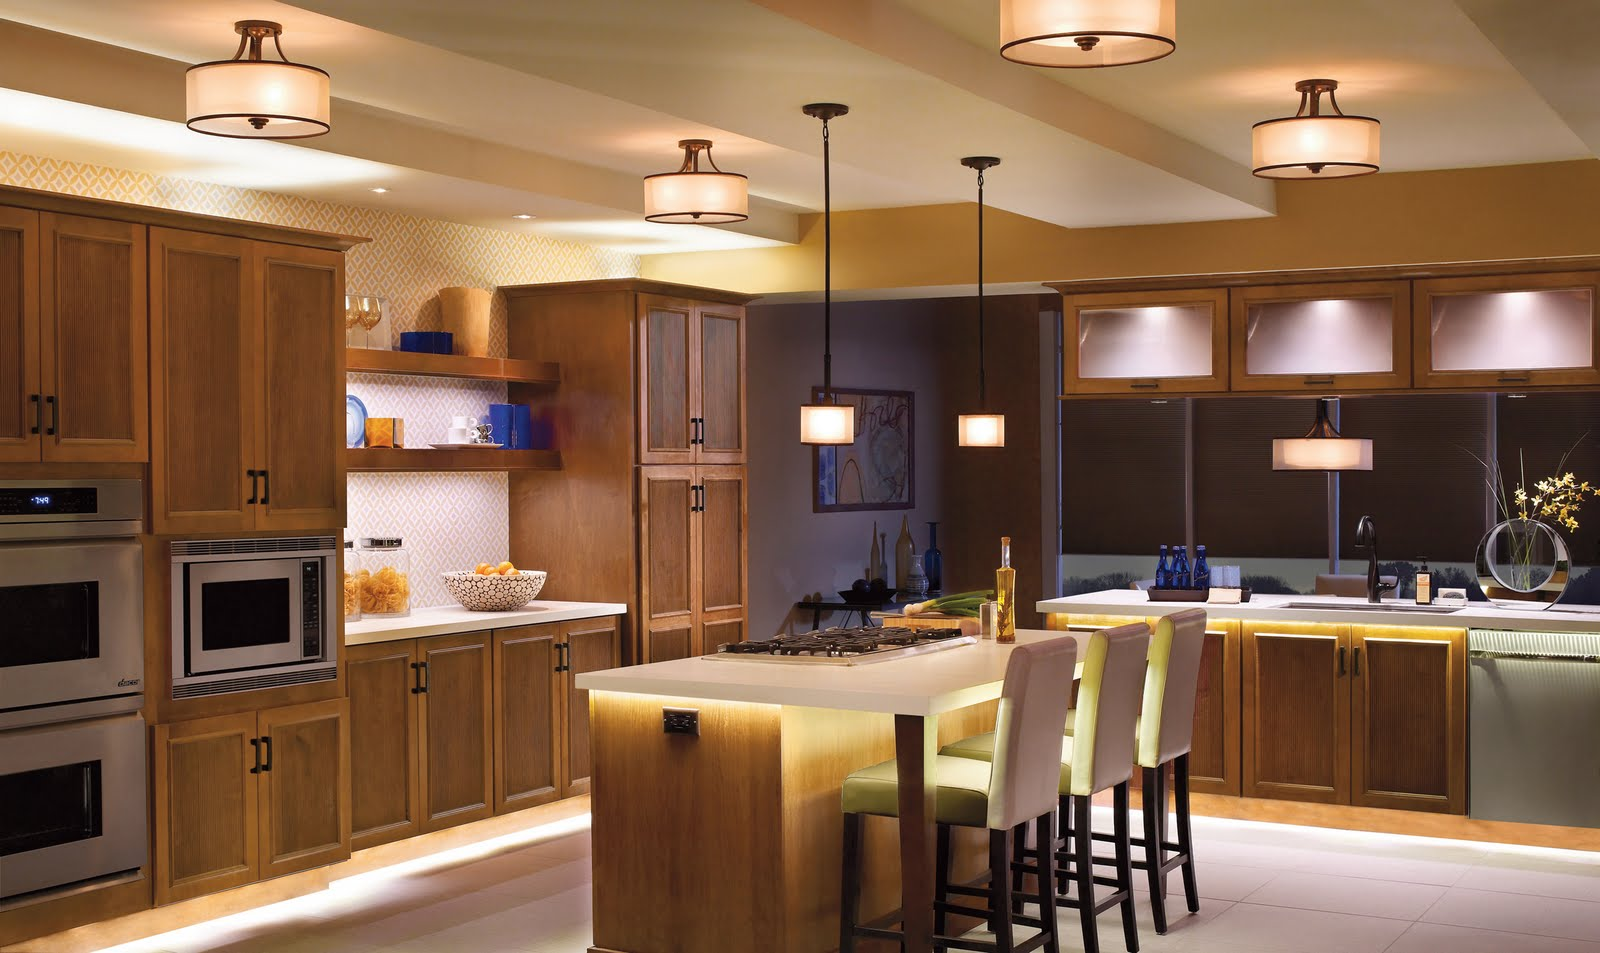 kitchen lighting design ideas photos. 76 Kitchen Lighting Design Tips  EiXei Home Improvement